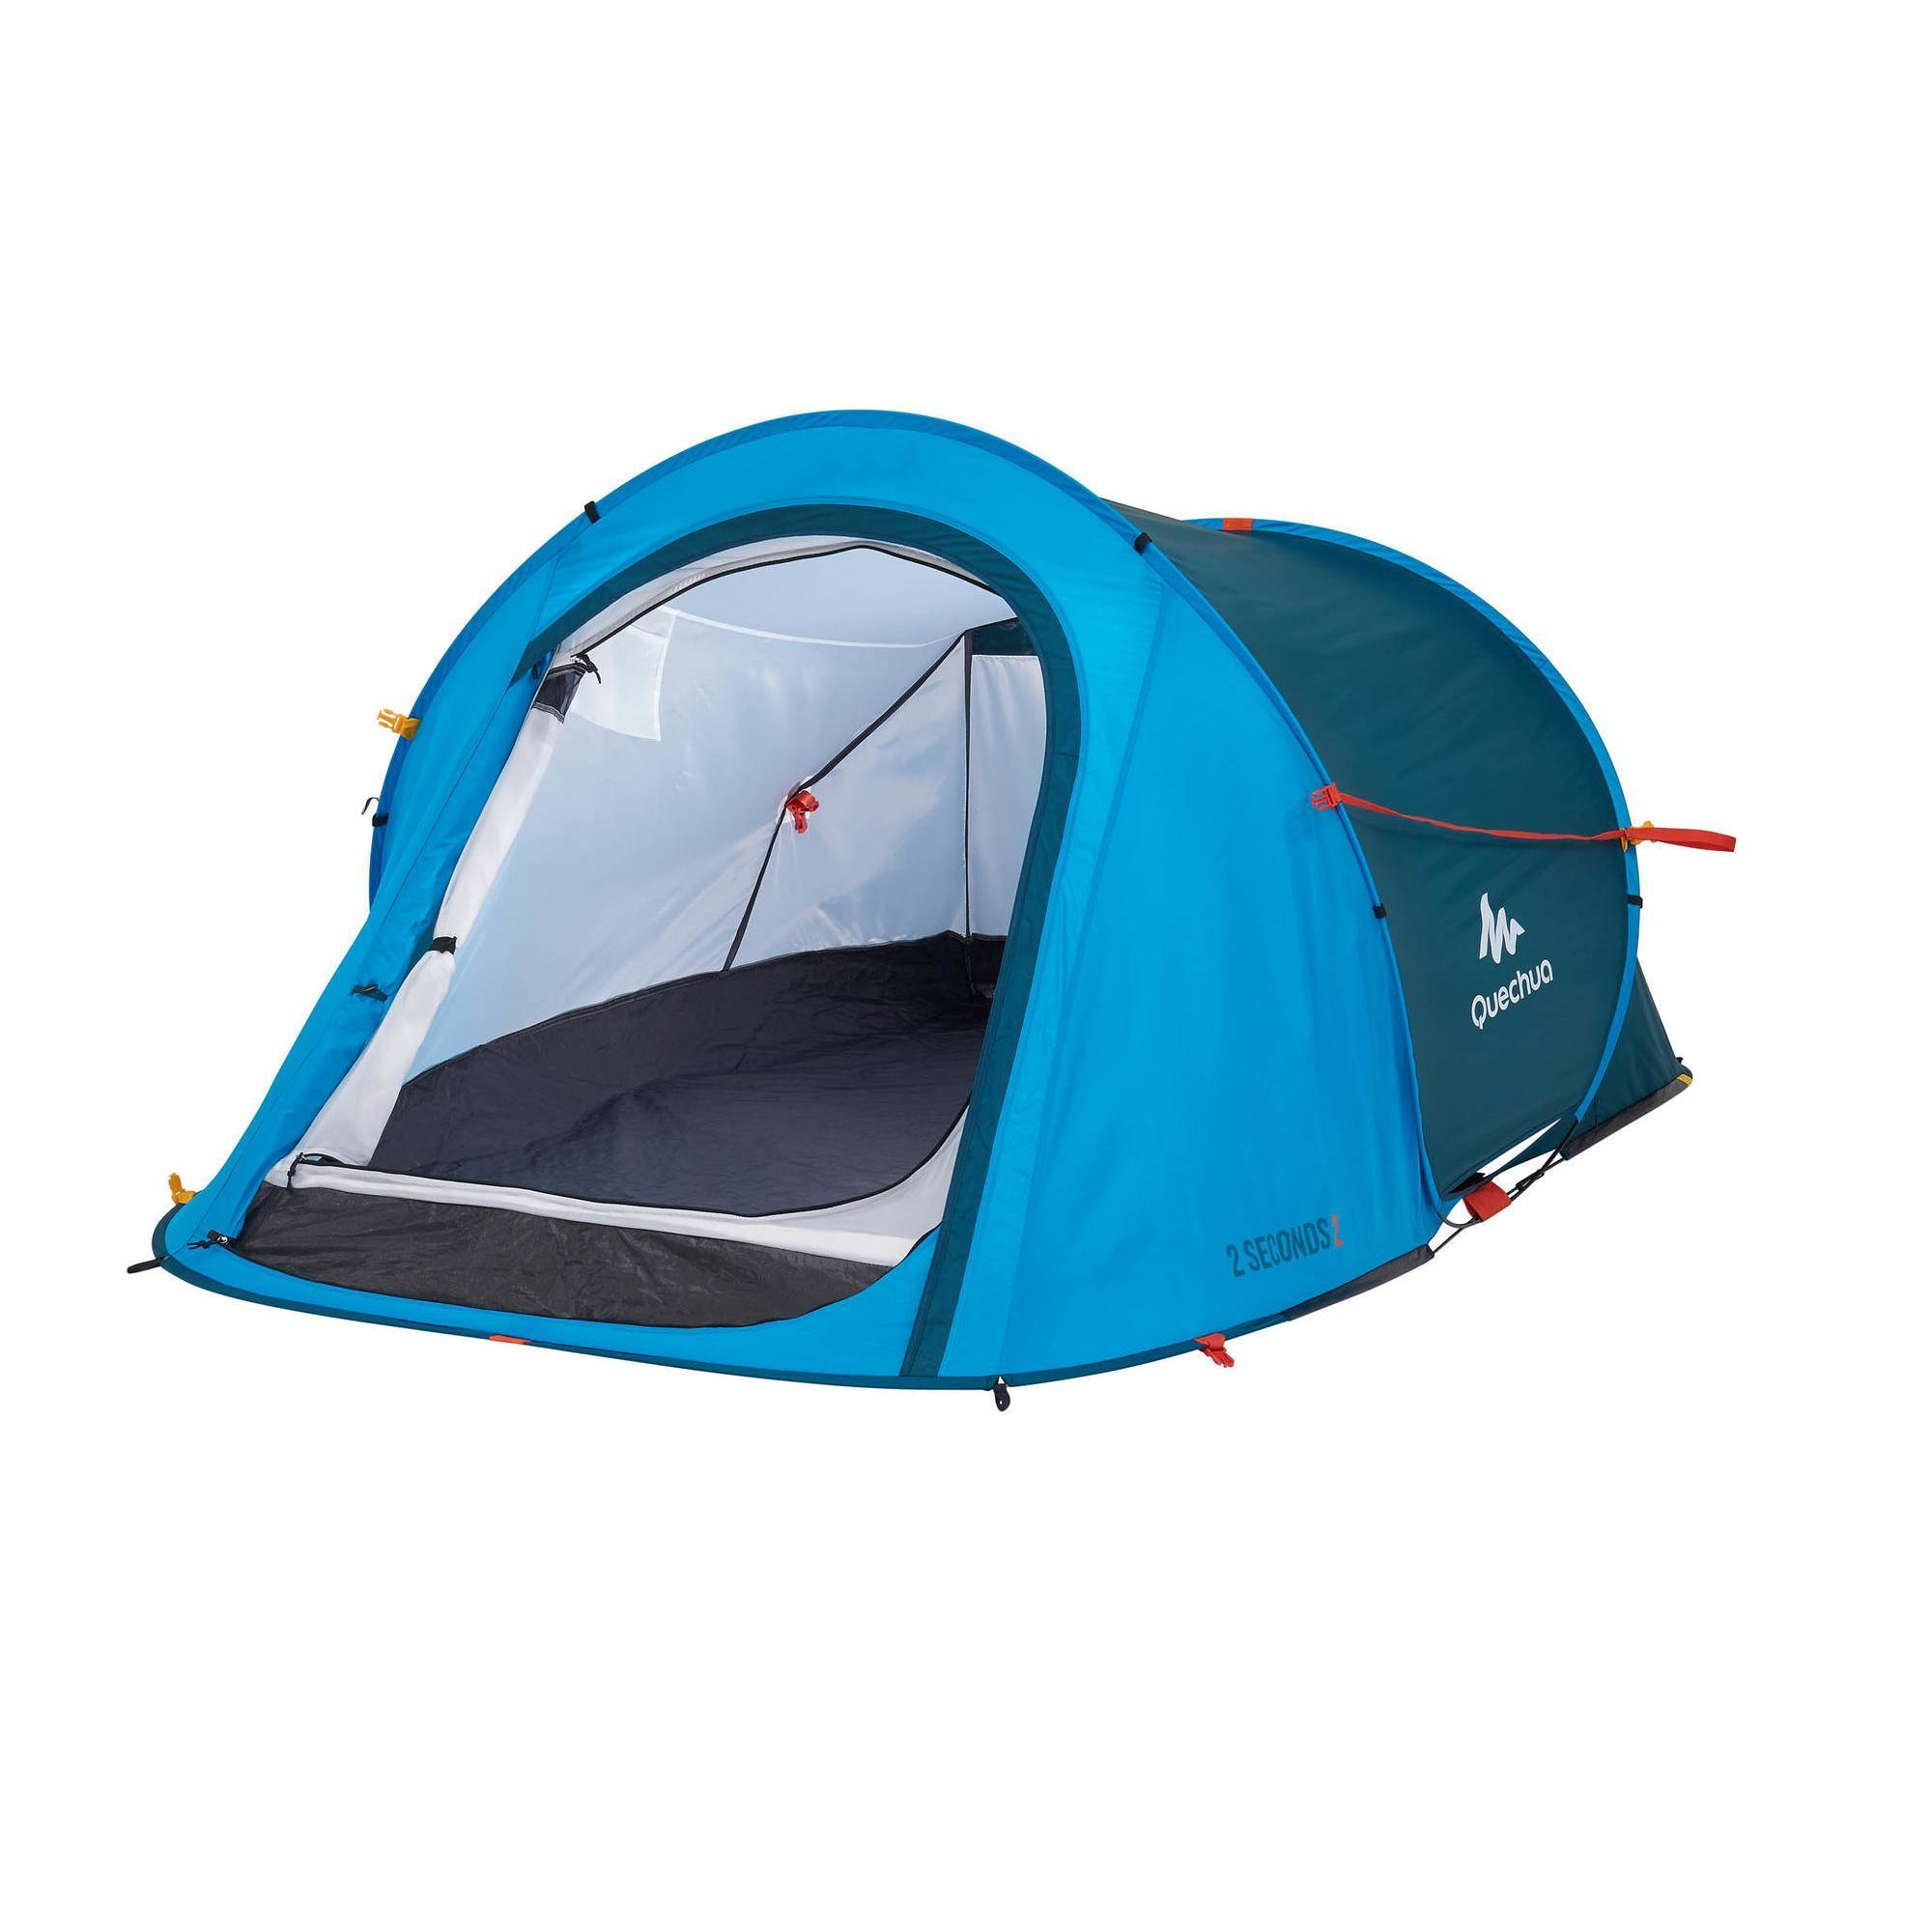 2 Seconds 2 Pers - Blue  sc 1 st  Quechua & Camping tents for 1 to 3 people | Quechua